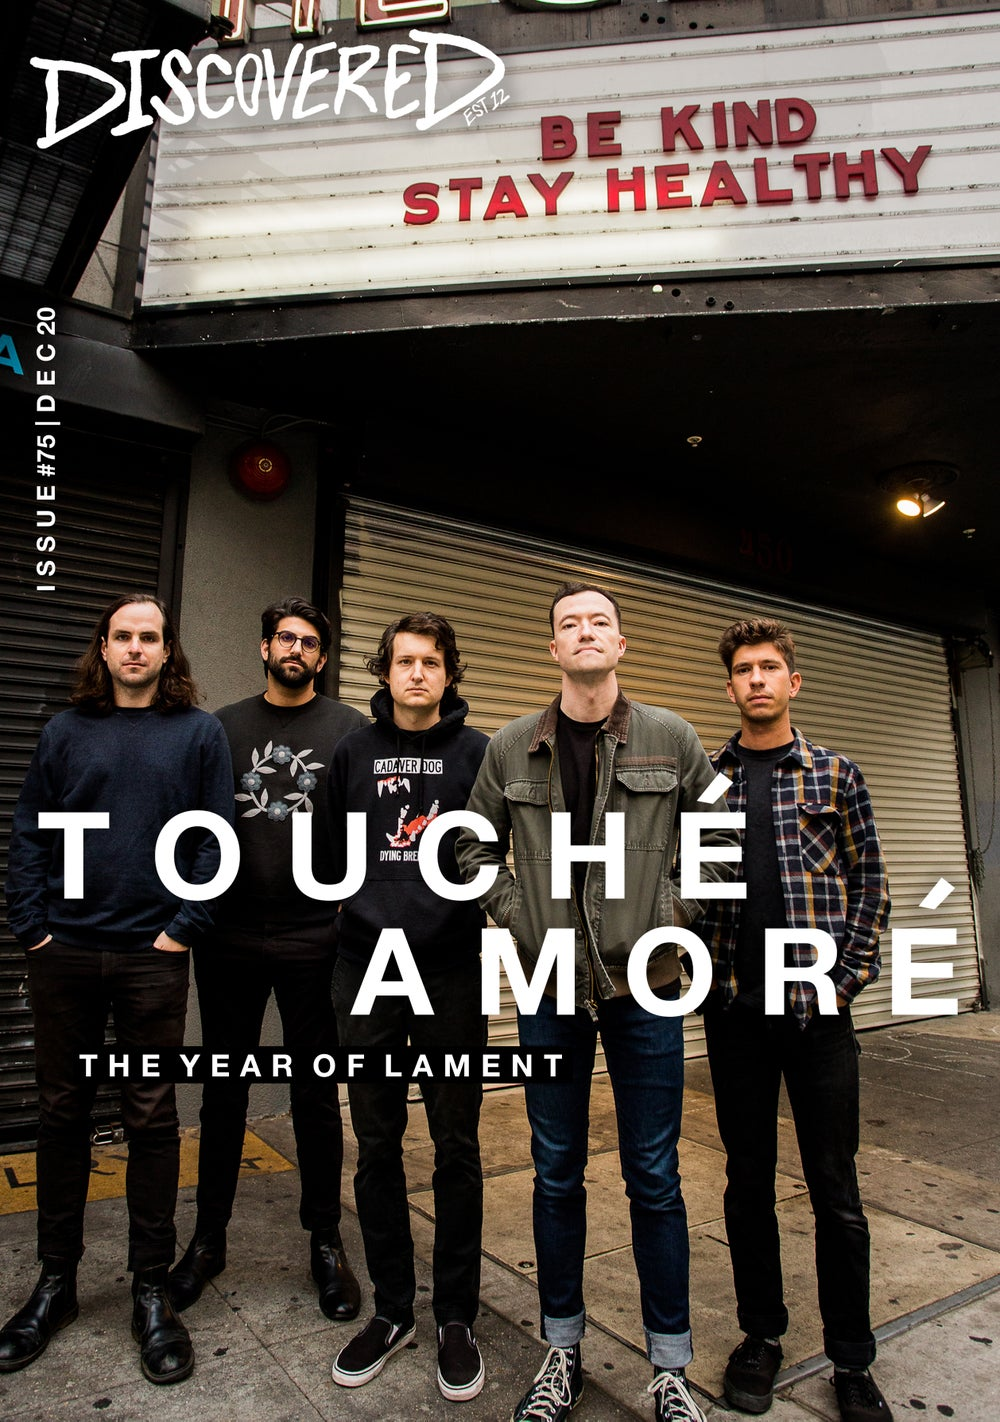 Image of ISSUE #75 - TOUCHE AMORE - DECEMBER 2020